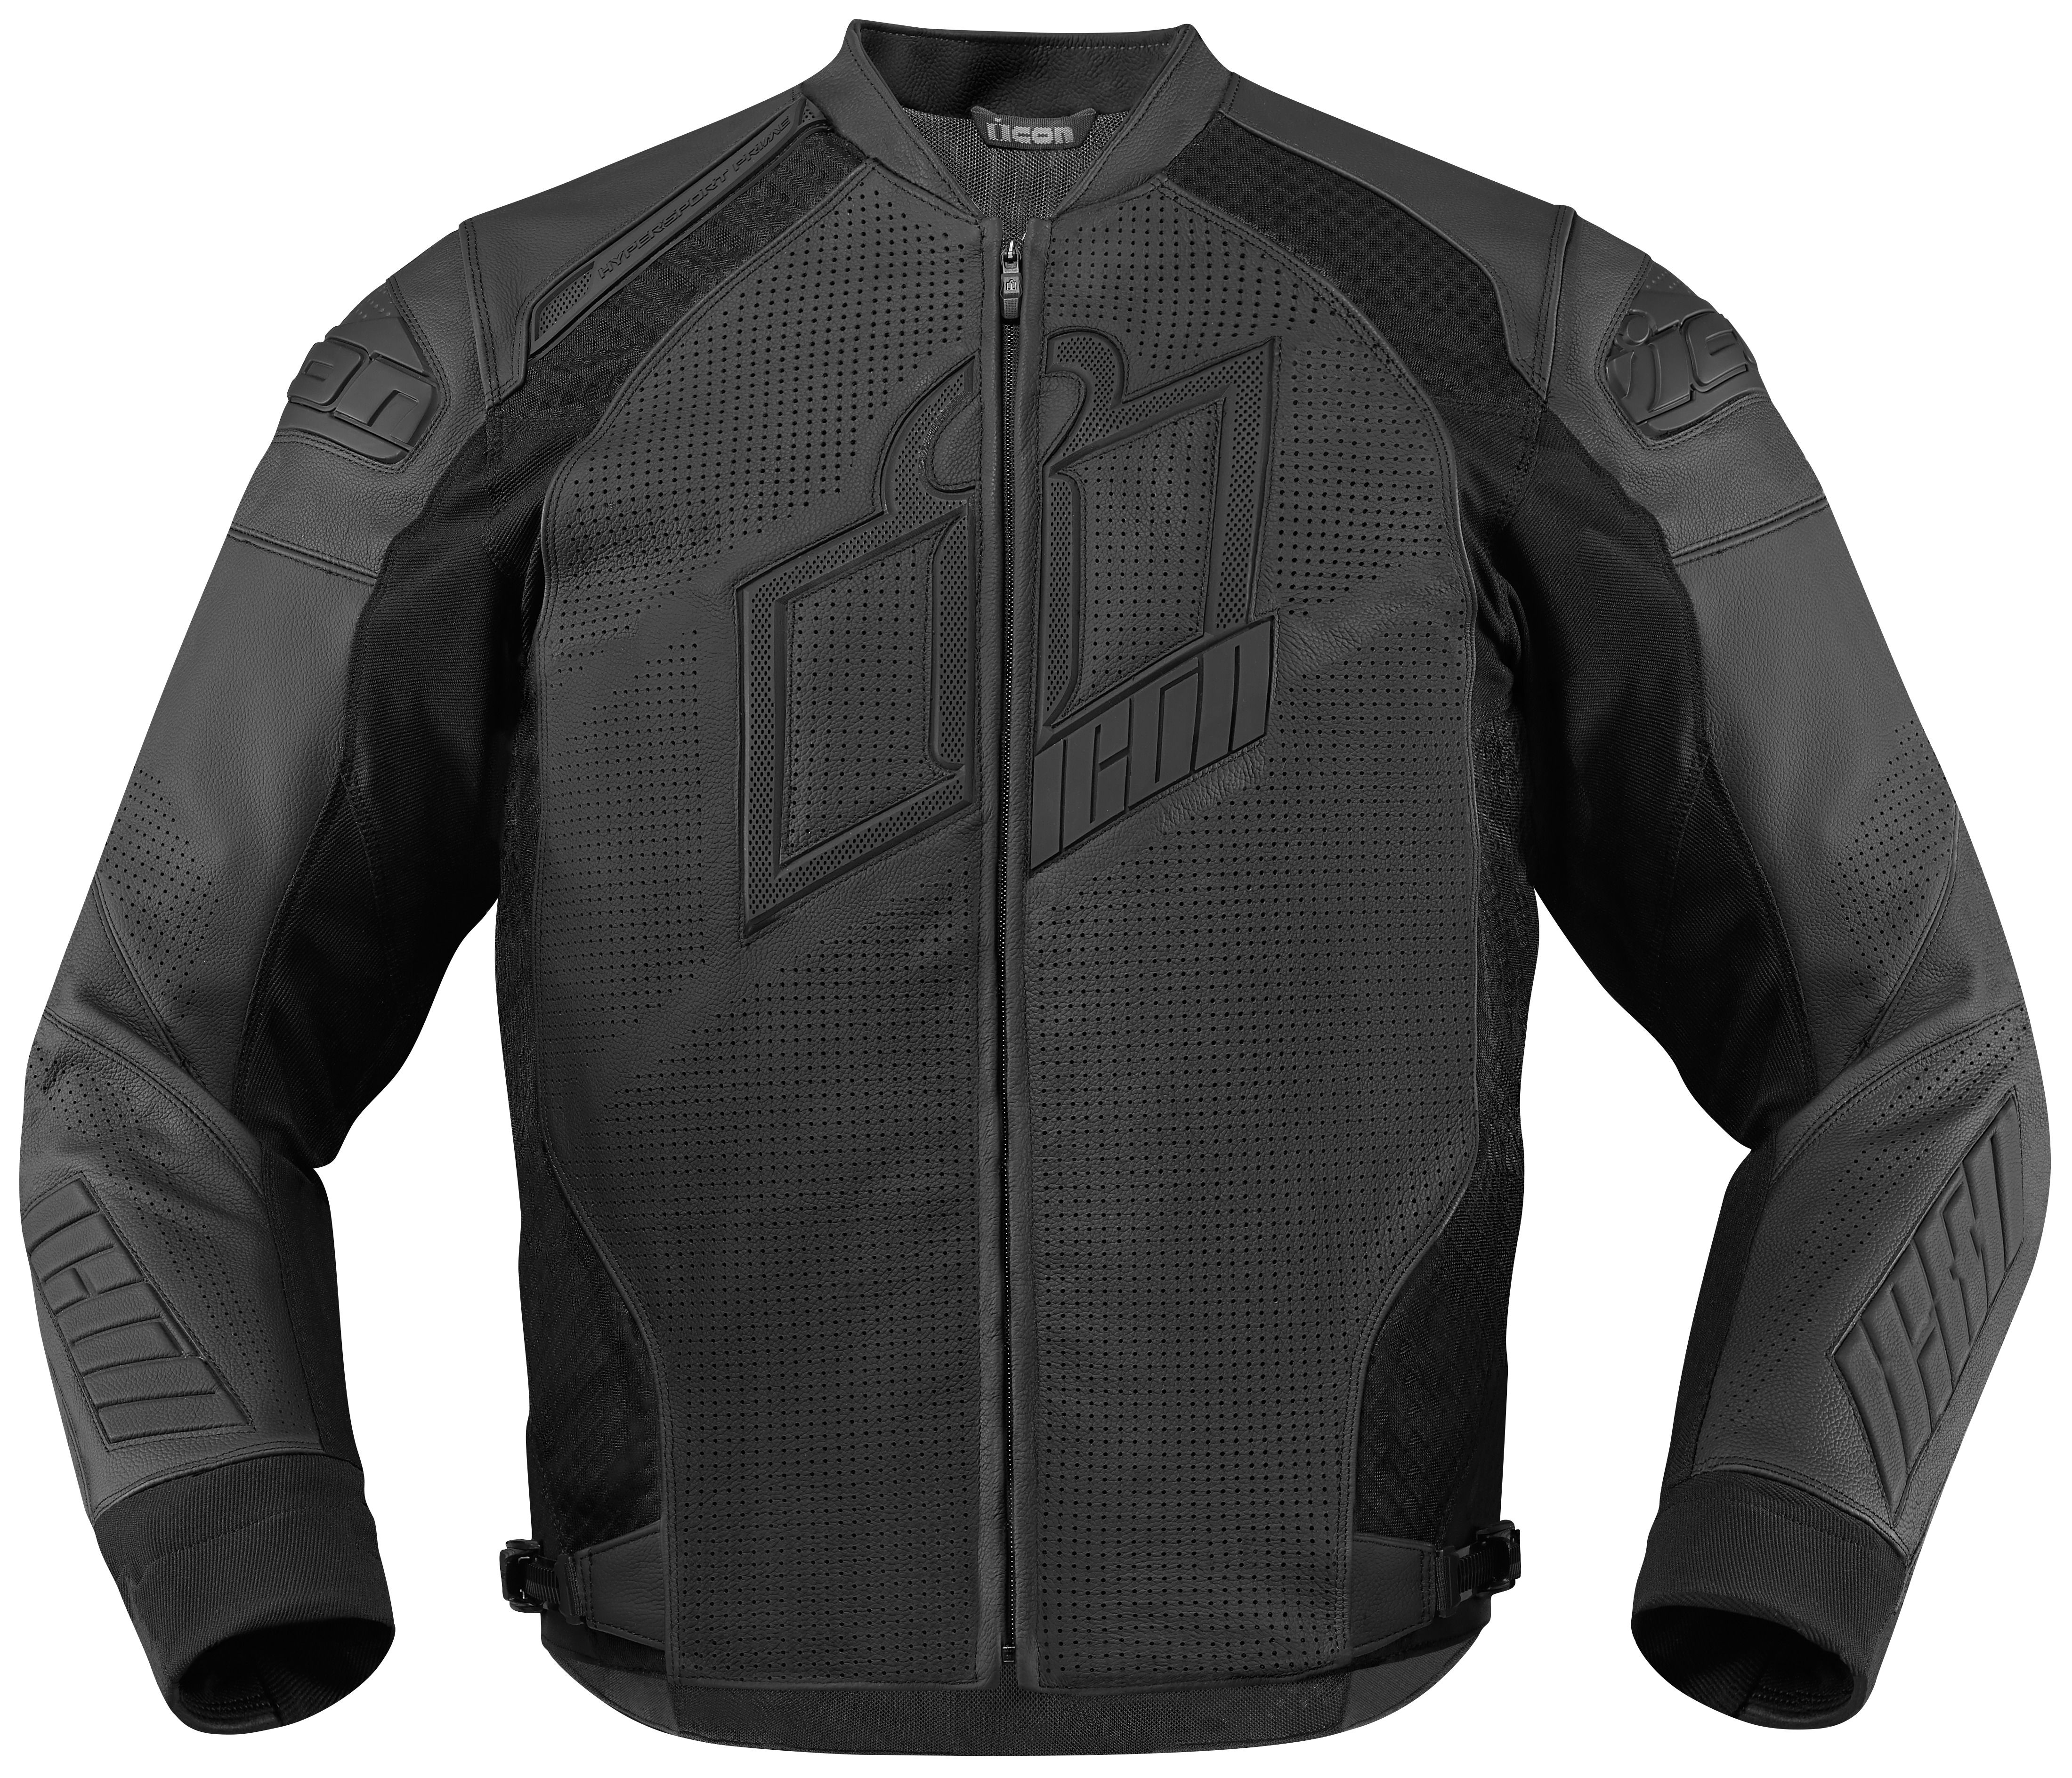 Leather jacket for motorcycle riding - Leather Jacket For Motorcycle Riding 5